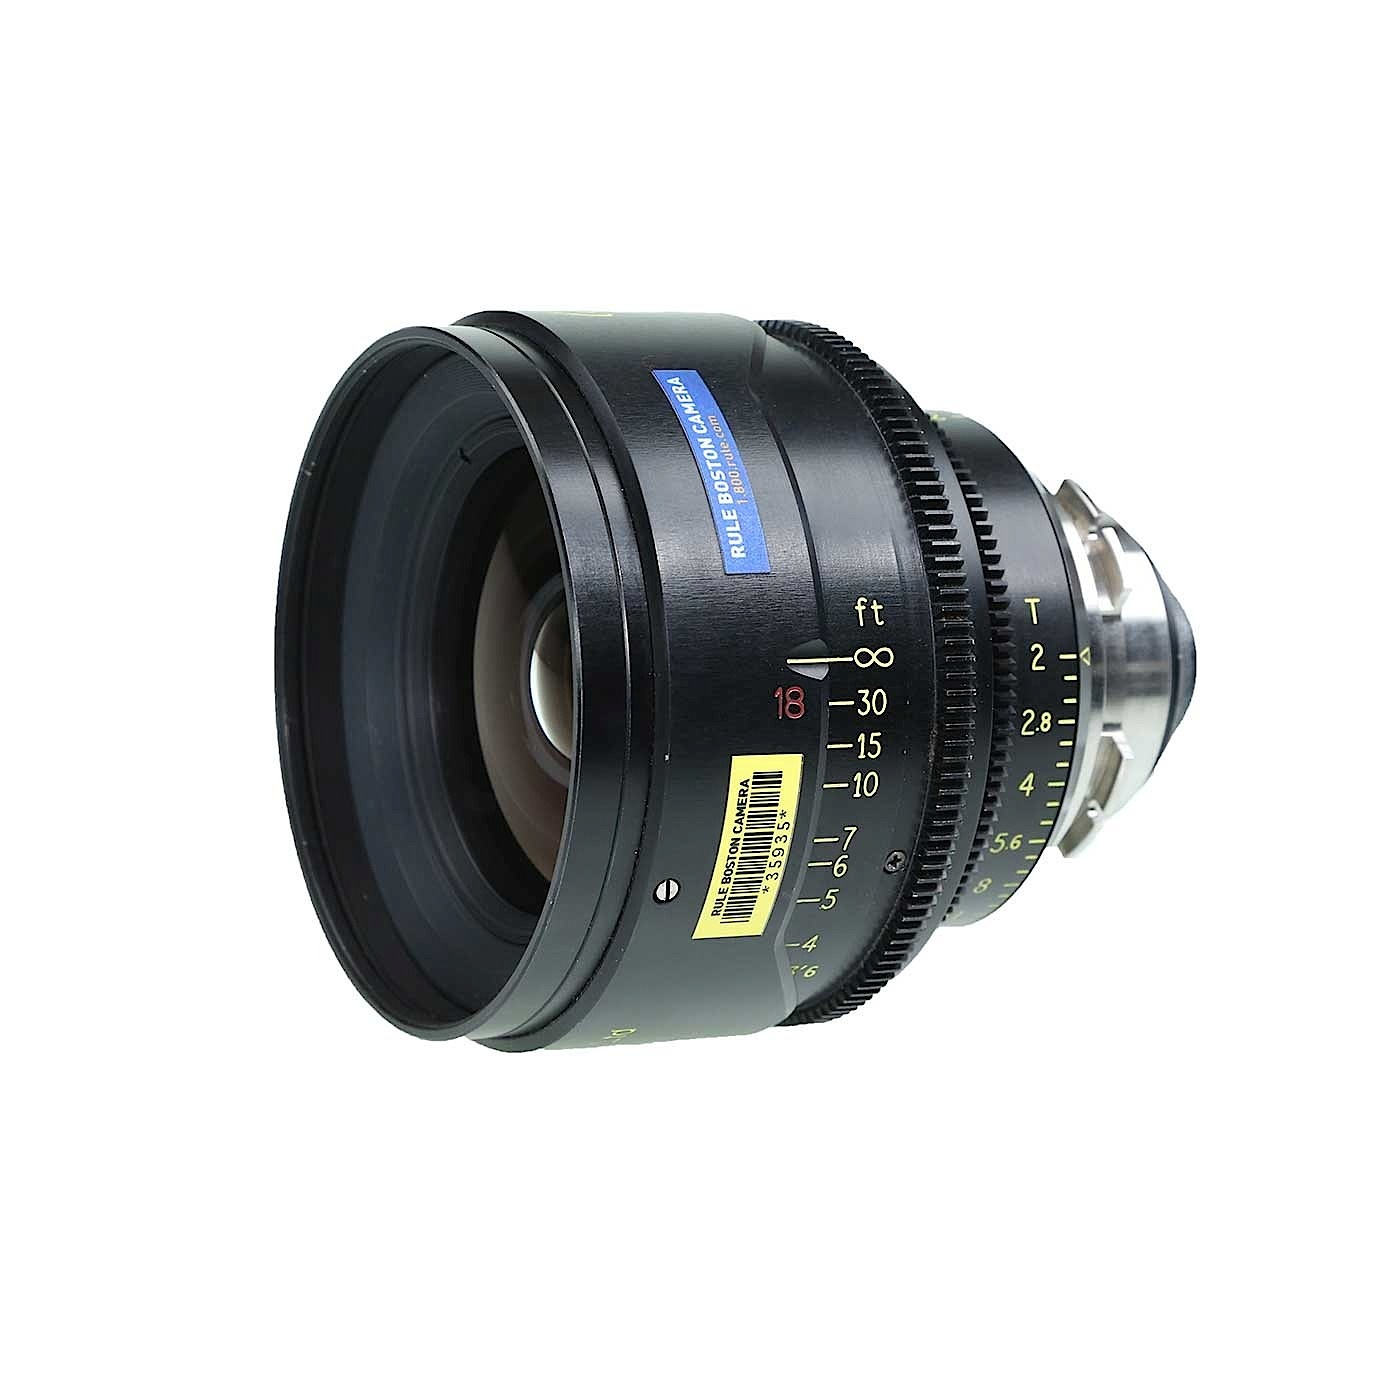 Cooke 18mm S4 PL Prime Lens